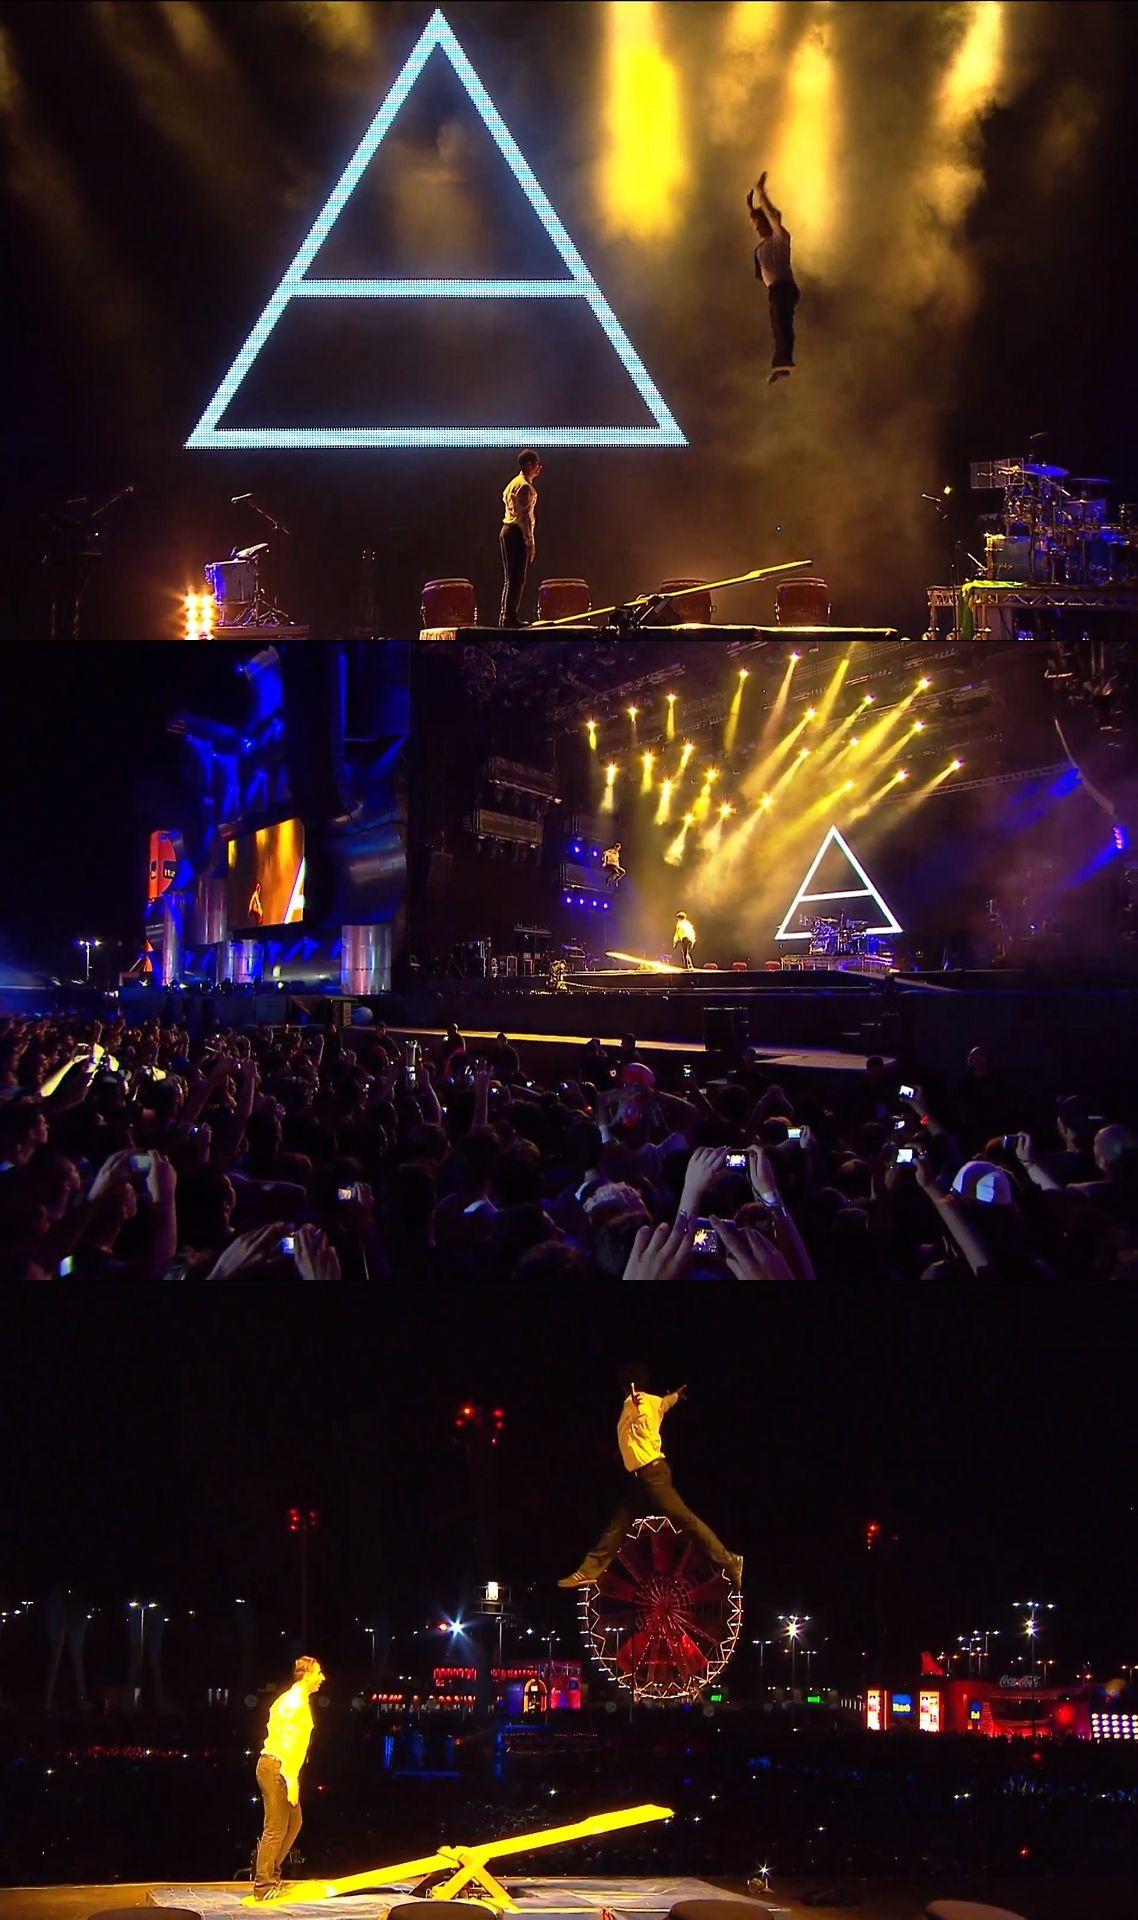 30 Seconds To Mars.-  #MARSinRio #RockInRio13 14-09-2013  -SHOW- (via http://emirhansdiary.tumblr.com/post/61292939343/pyres-of-varanasi-rock-in-rio-2013